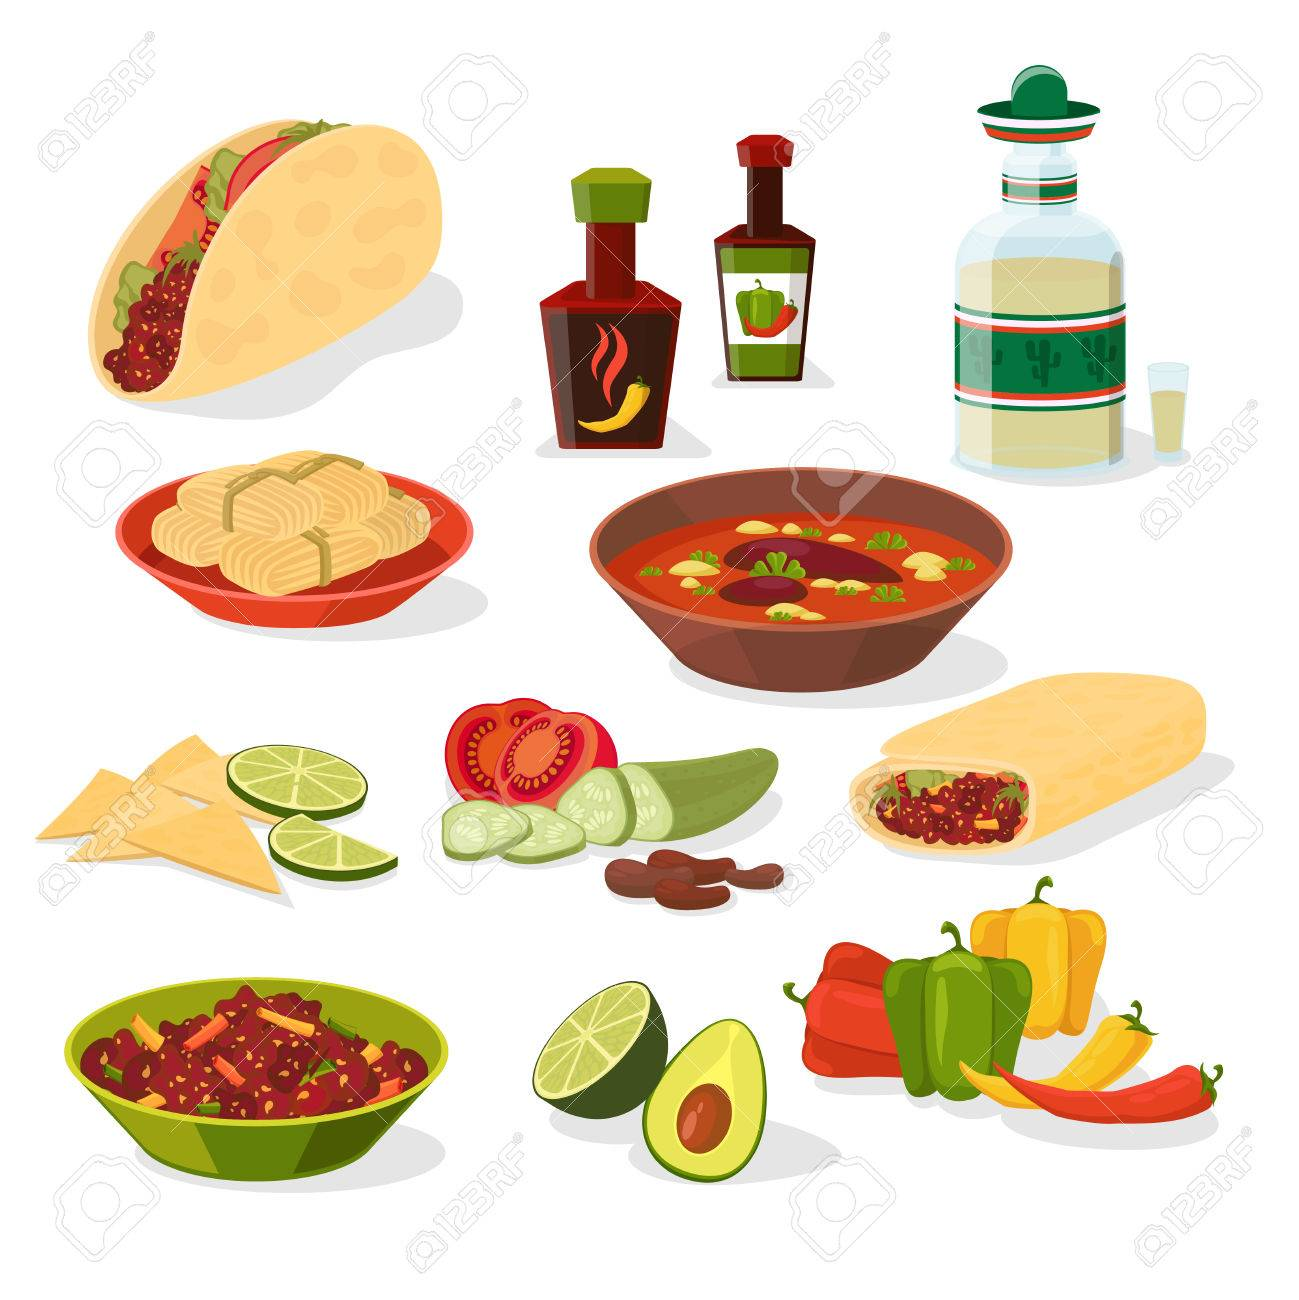 Mexican Food Icons Set Royalty Free Cliparts, Vectors, And Stock ...